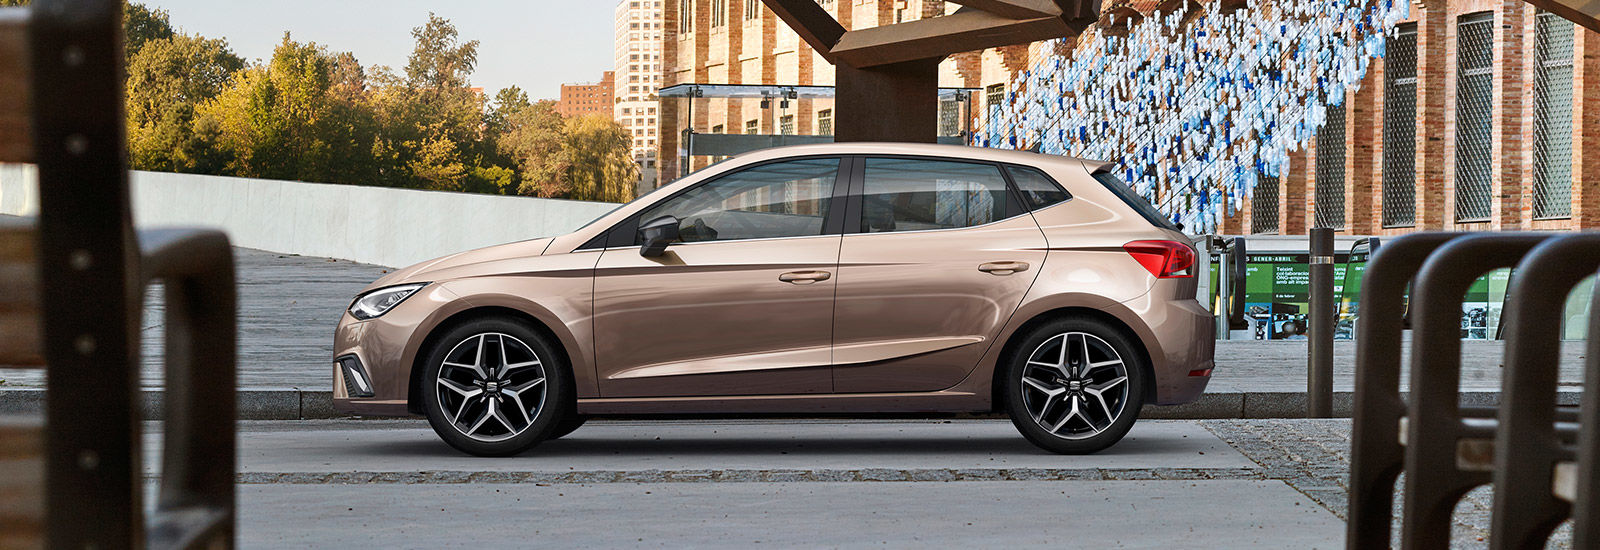 2017 seat ibiza price specs and release date carwow. Black Bedroom Furniture Sets. Home Design Ideas